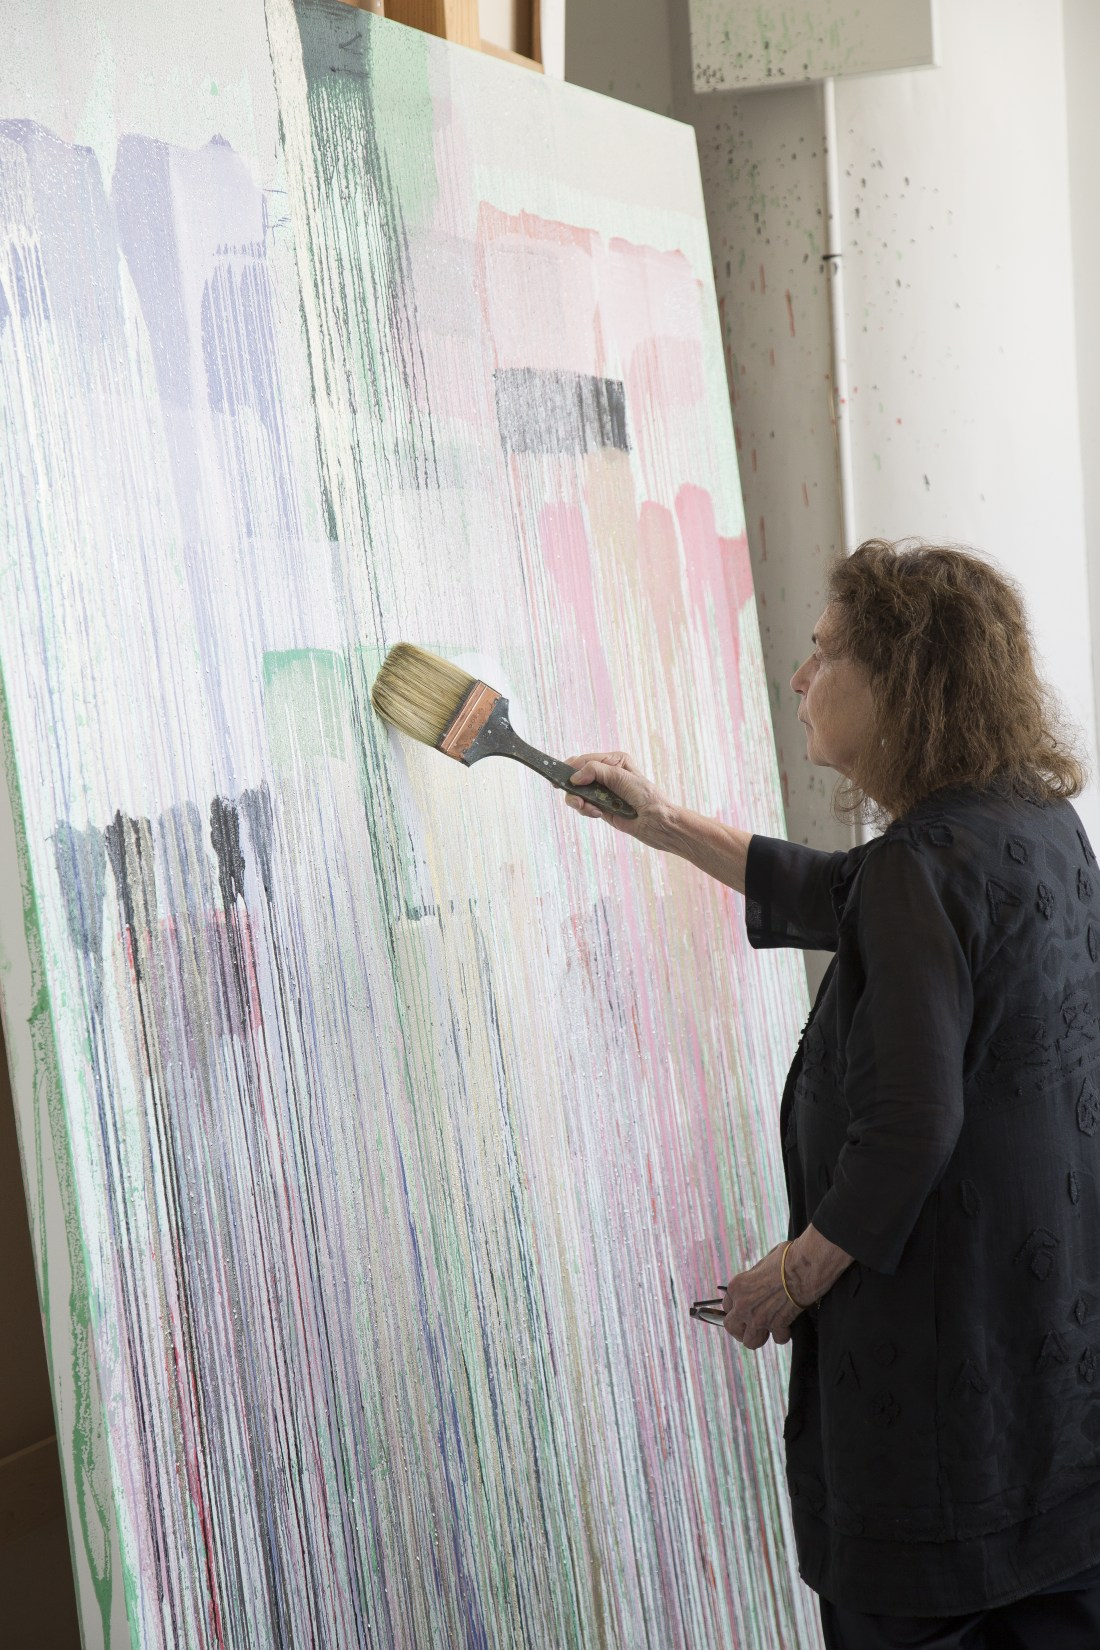 Pat Steir, 2017. Photo: Jean-François Jaussaud